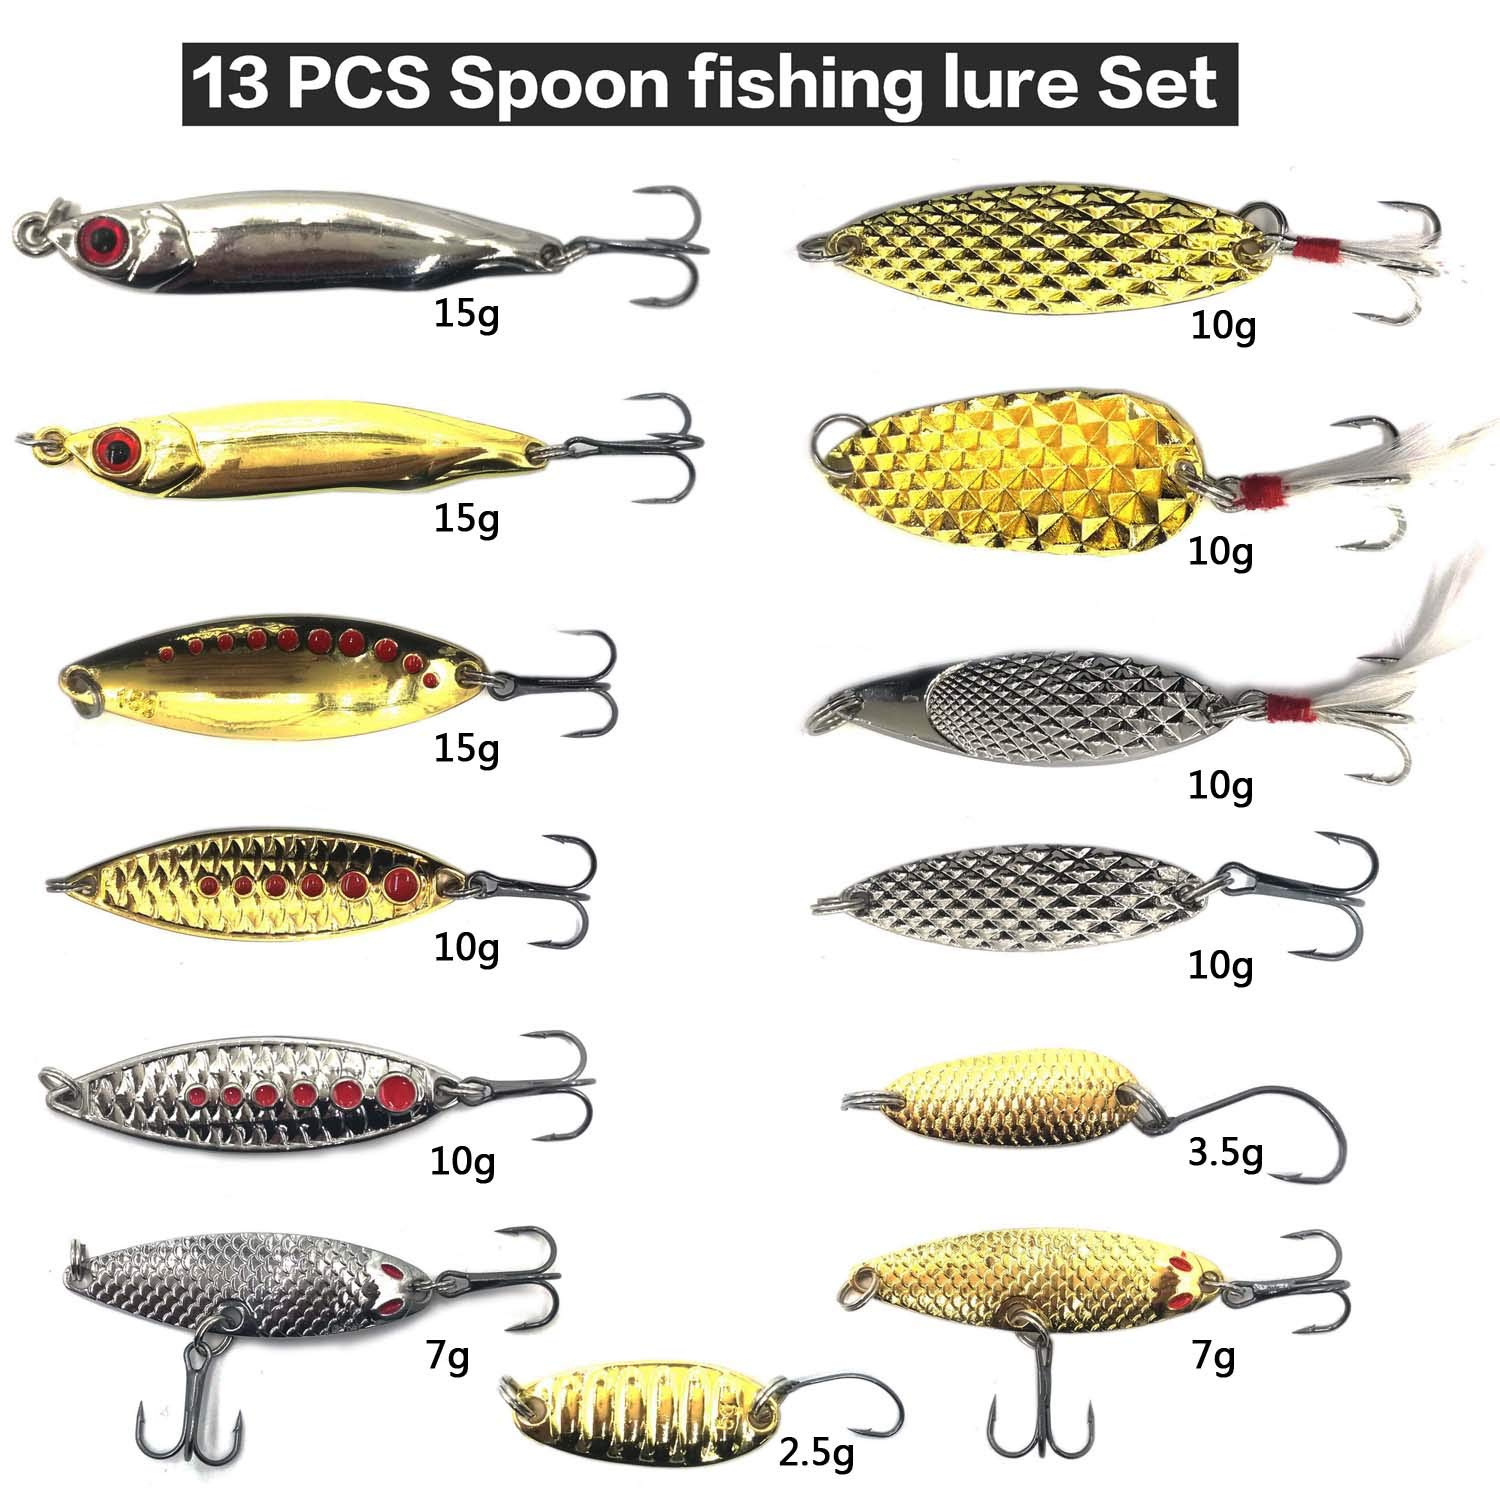 Hard Fishing Lure Set 43pcs Assorted Bass Soft Fishing Lure Kit Colorful Minnow Popper Crank Rattlin VIB Jointed Fishing Lure Set Hard Crankbait Tackle Pack For Saltwater or Freshwater (Spoon-30)